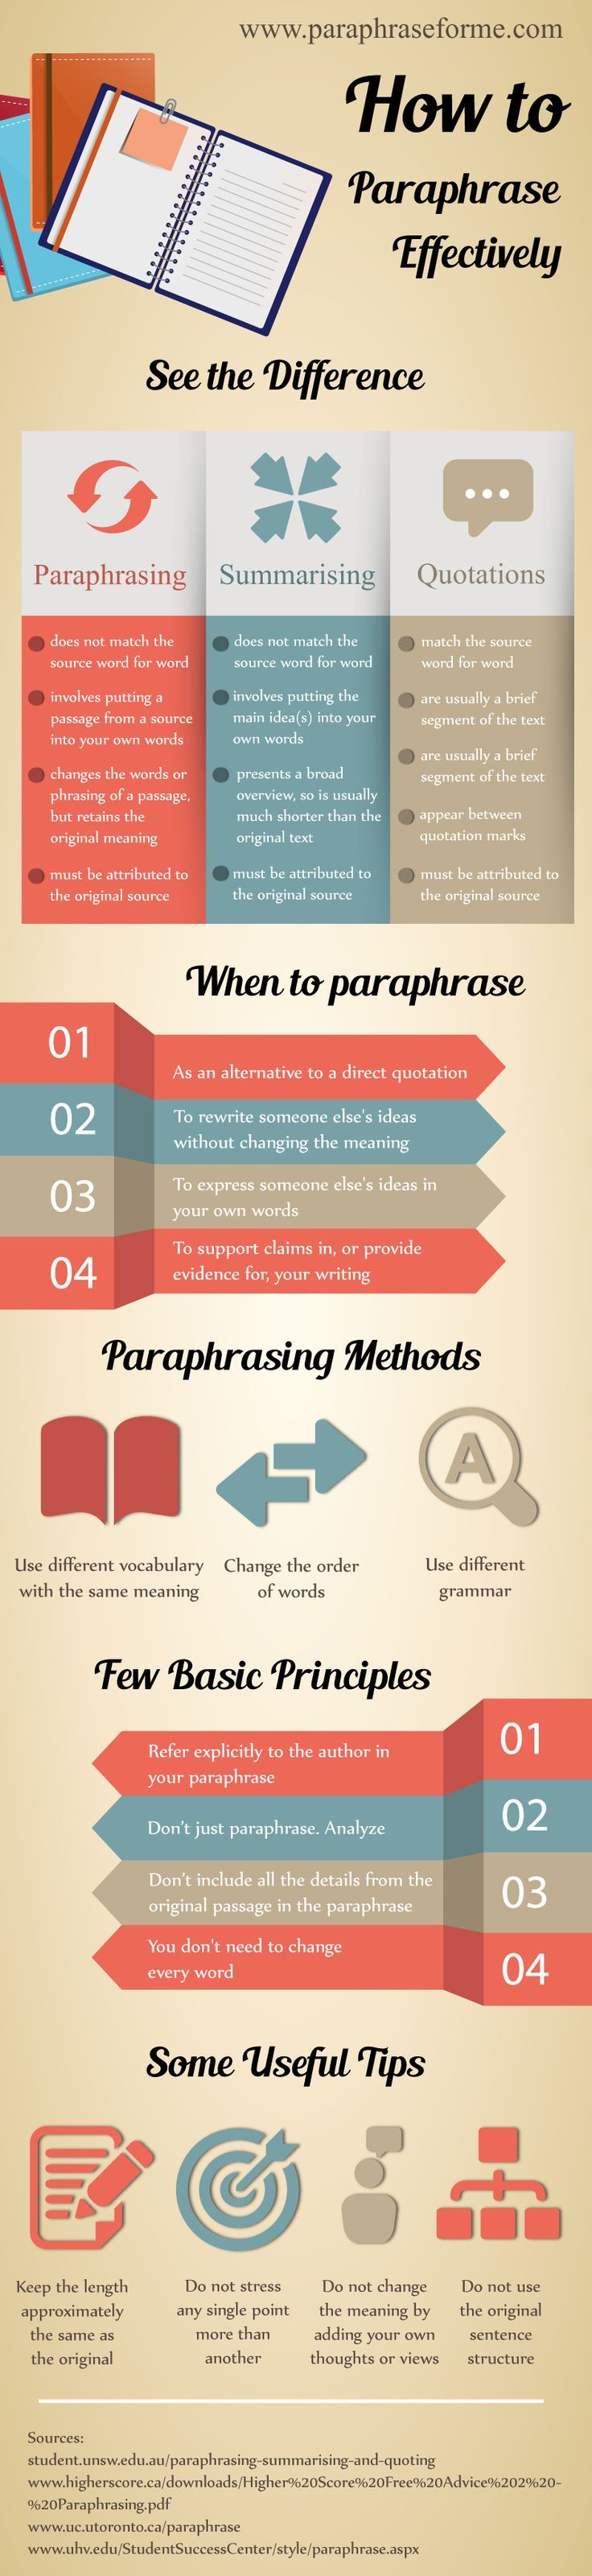 How To Paraphrase Effectively - An Infographic from uCollect Infographics